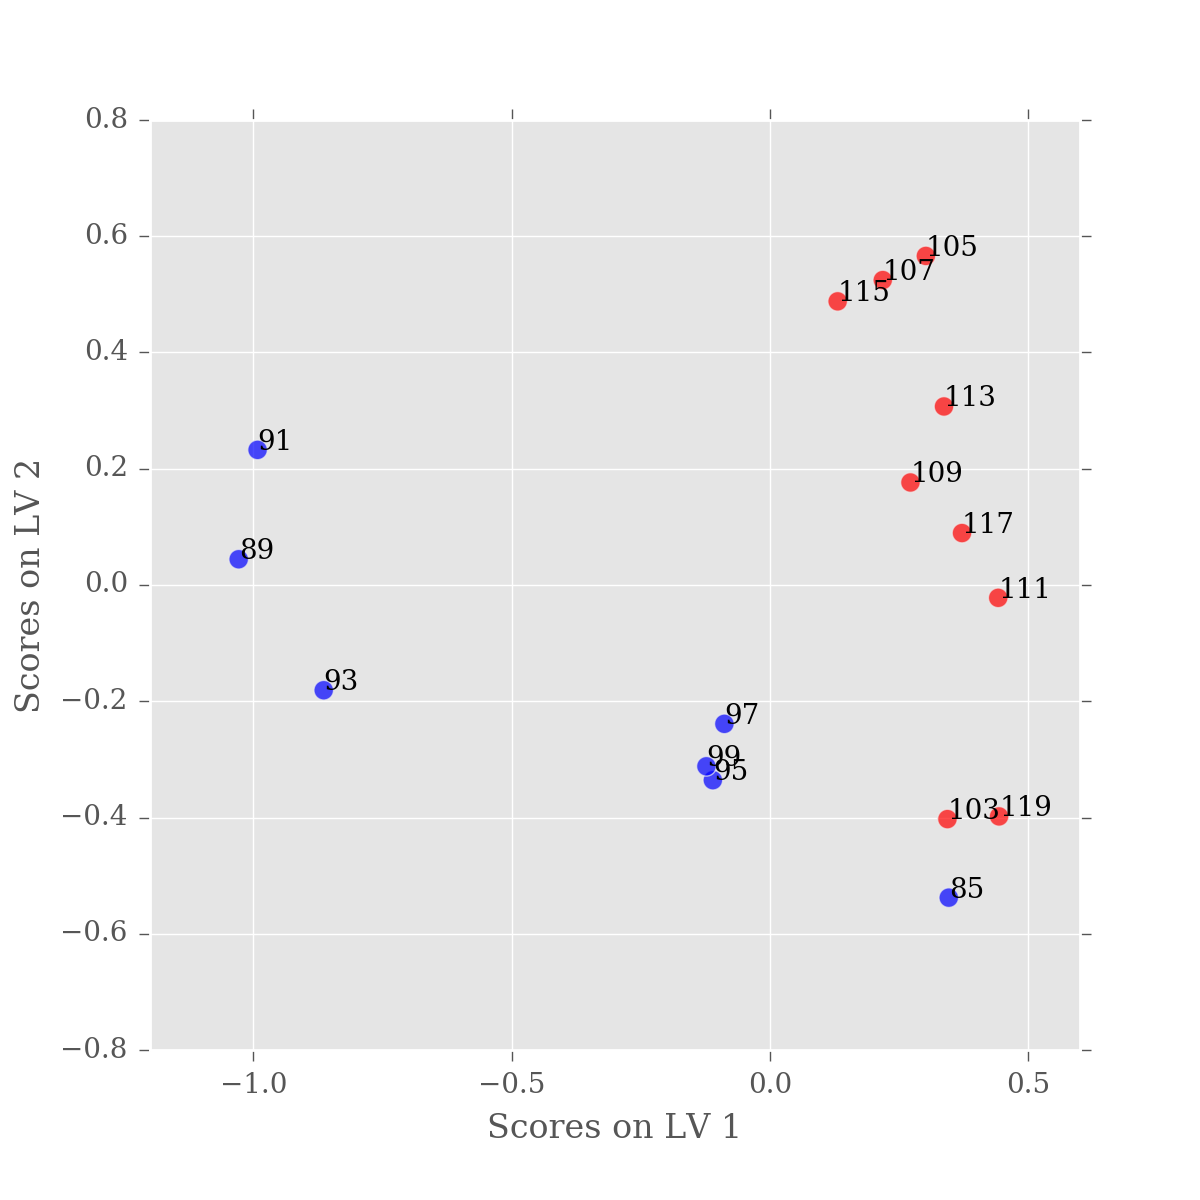 PLS-DA Scores plot for filtered data, LV1 and LV2 with sample labels